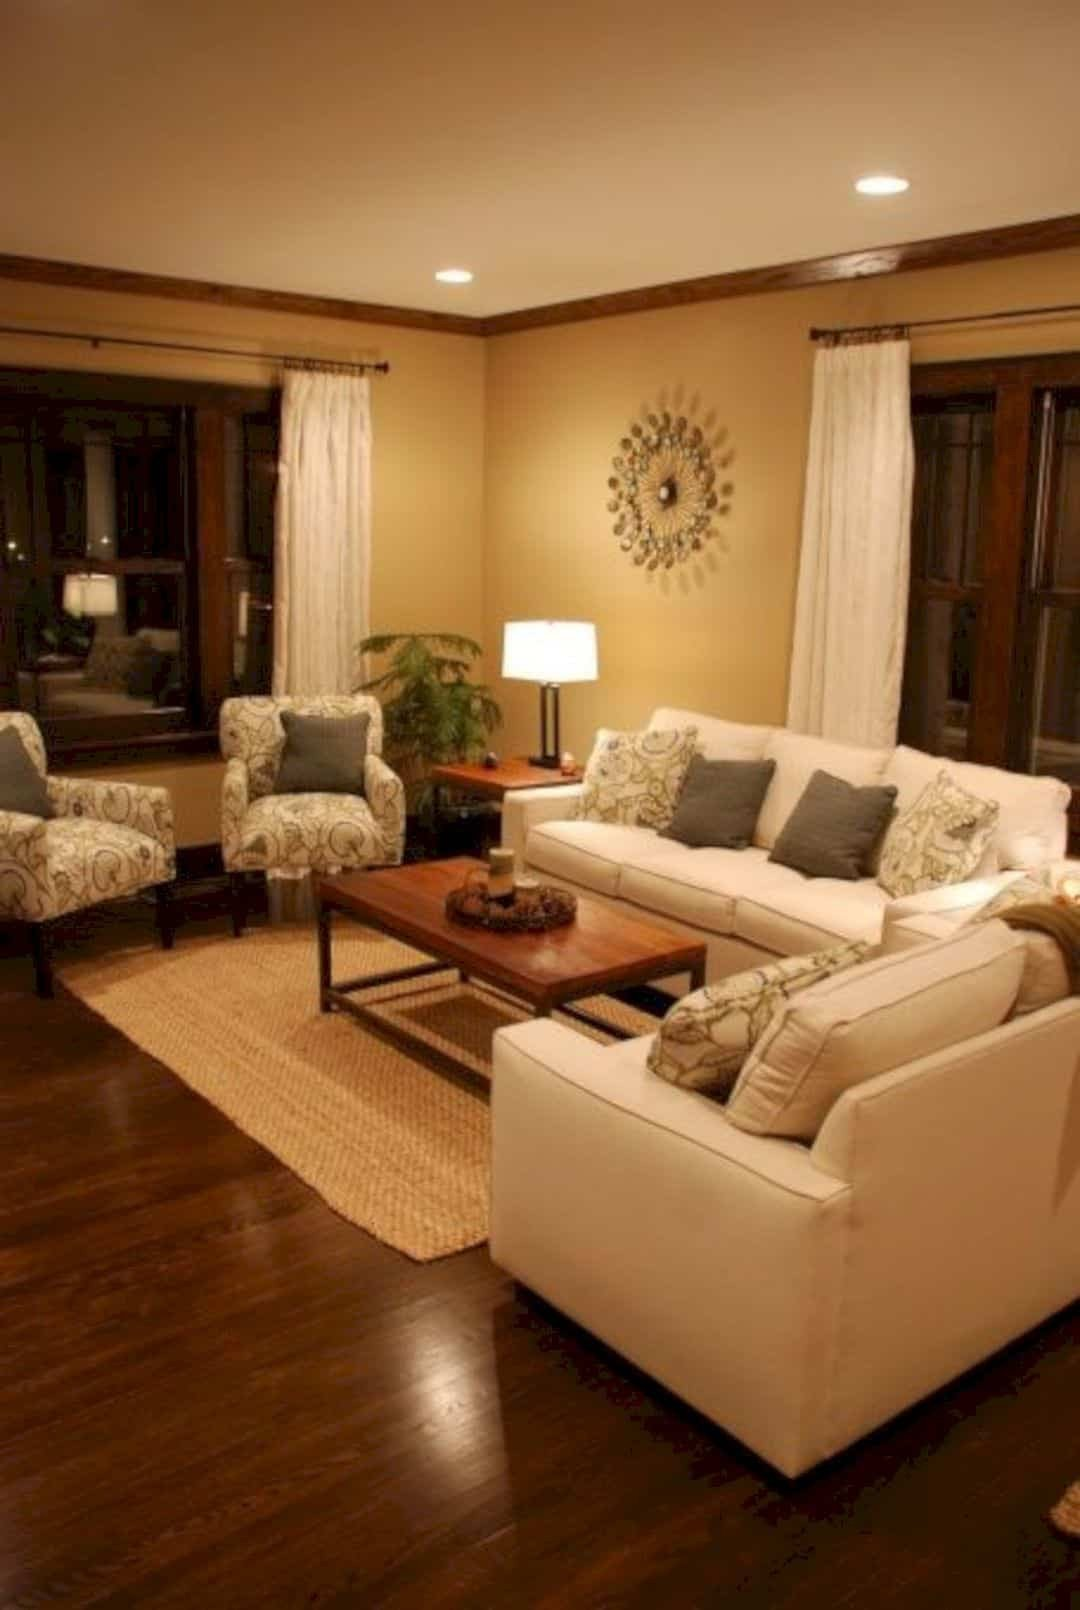 Apartment Living Room Ideas 16 Brilliant Furniture Arrangement Ideas